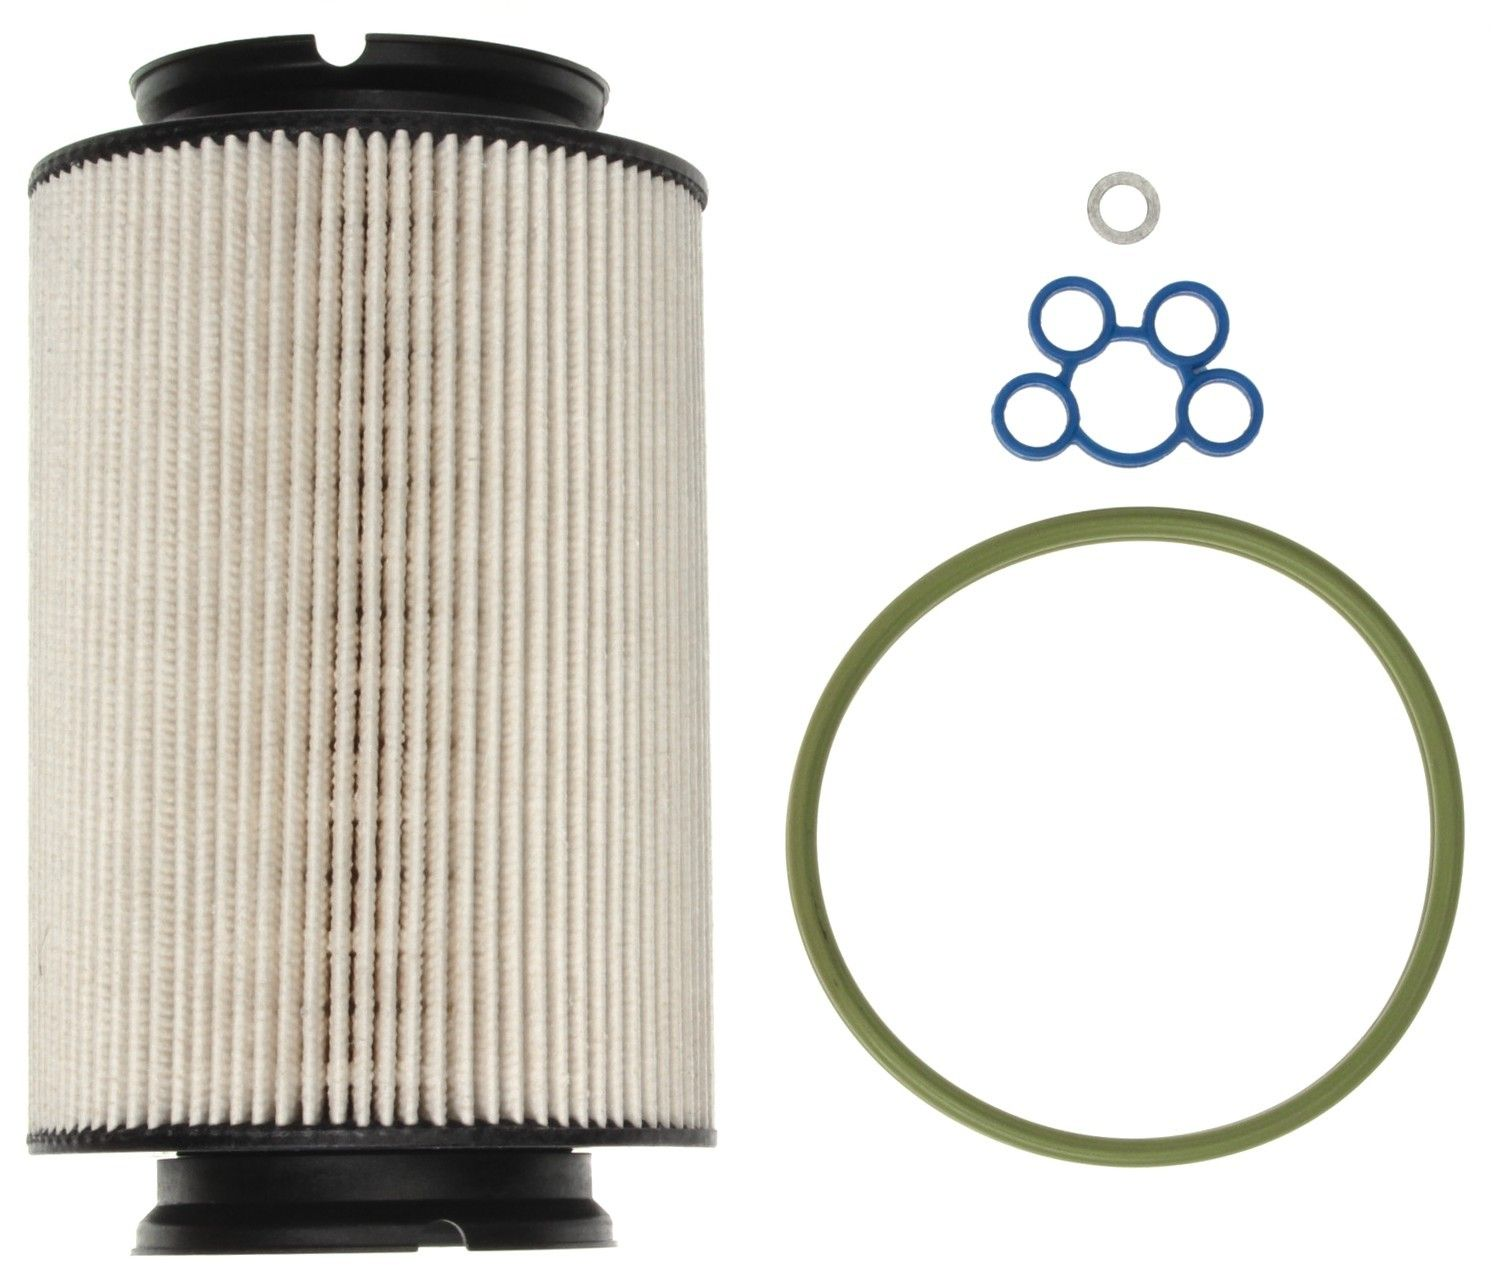 Volkswagen Jetta Fuel Filter Replacement Beck Arnley Bosch Fram 2006 4 Cyl 19l Mahle Kx 178d Eco Type Cartridge To Chassis Vin 1k6 817 800